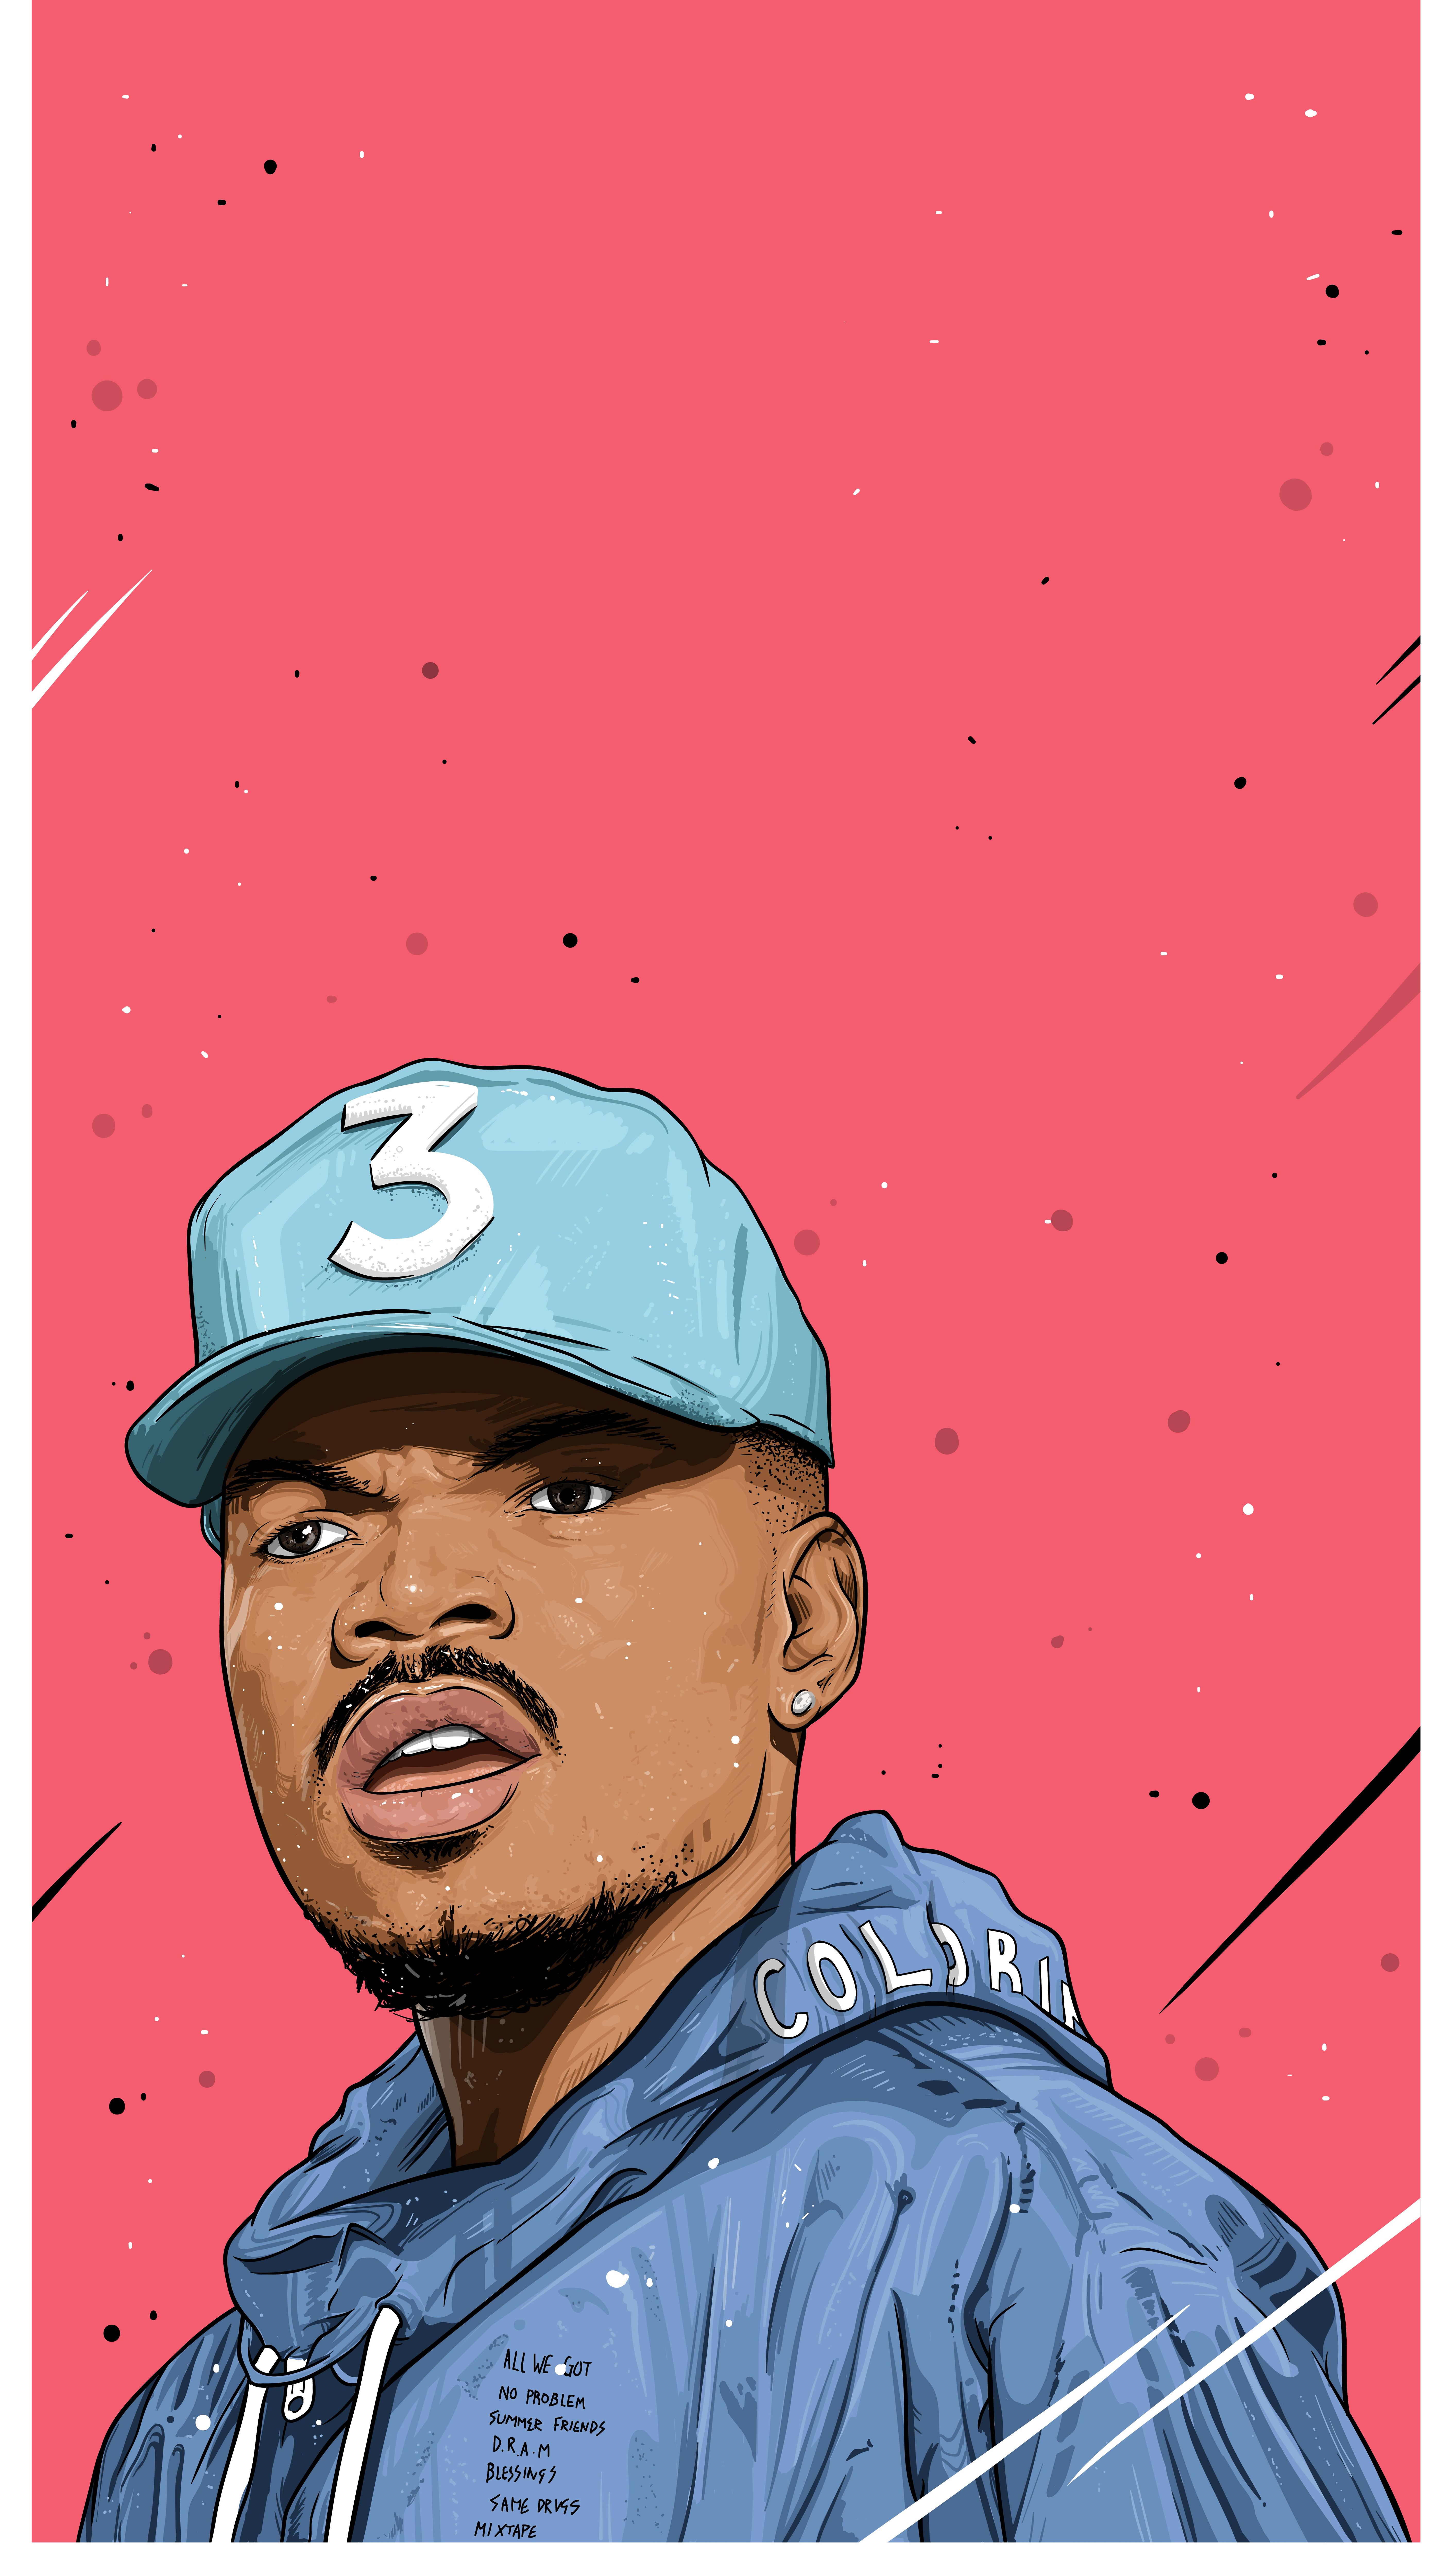 IPhone wallpaper design of a Chance The Rapper drawing I